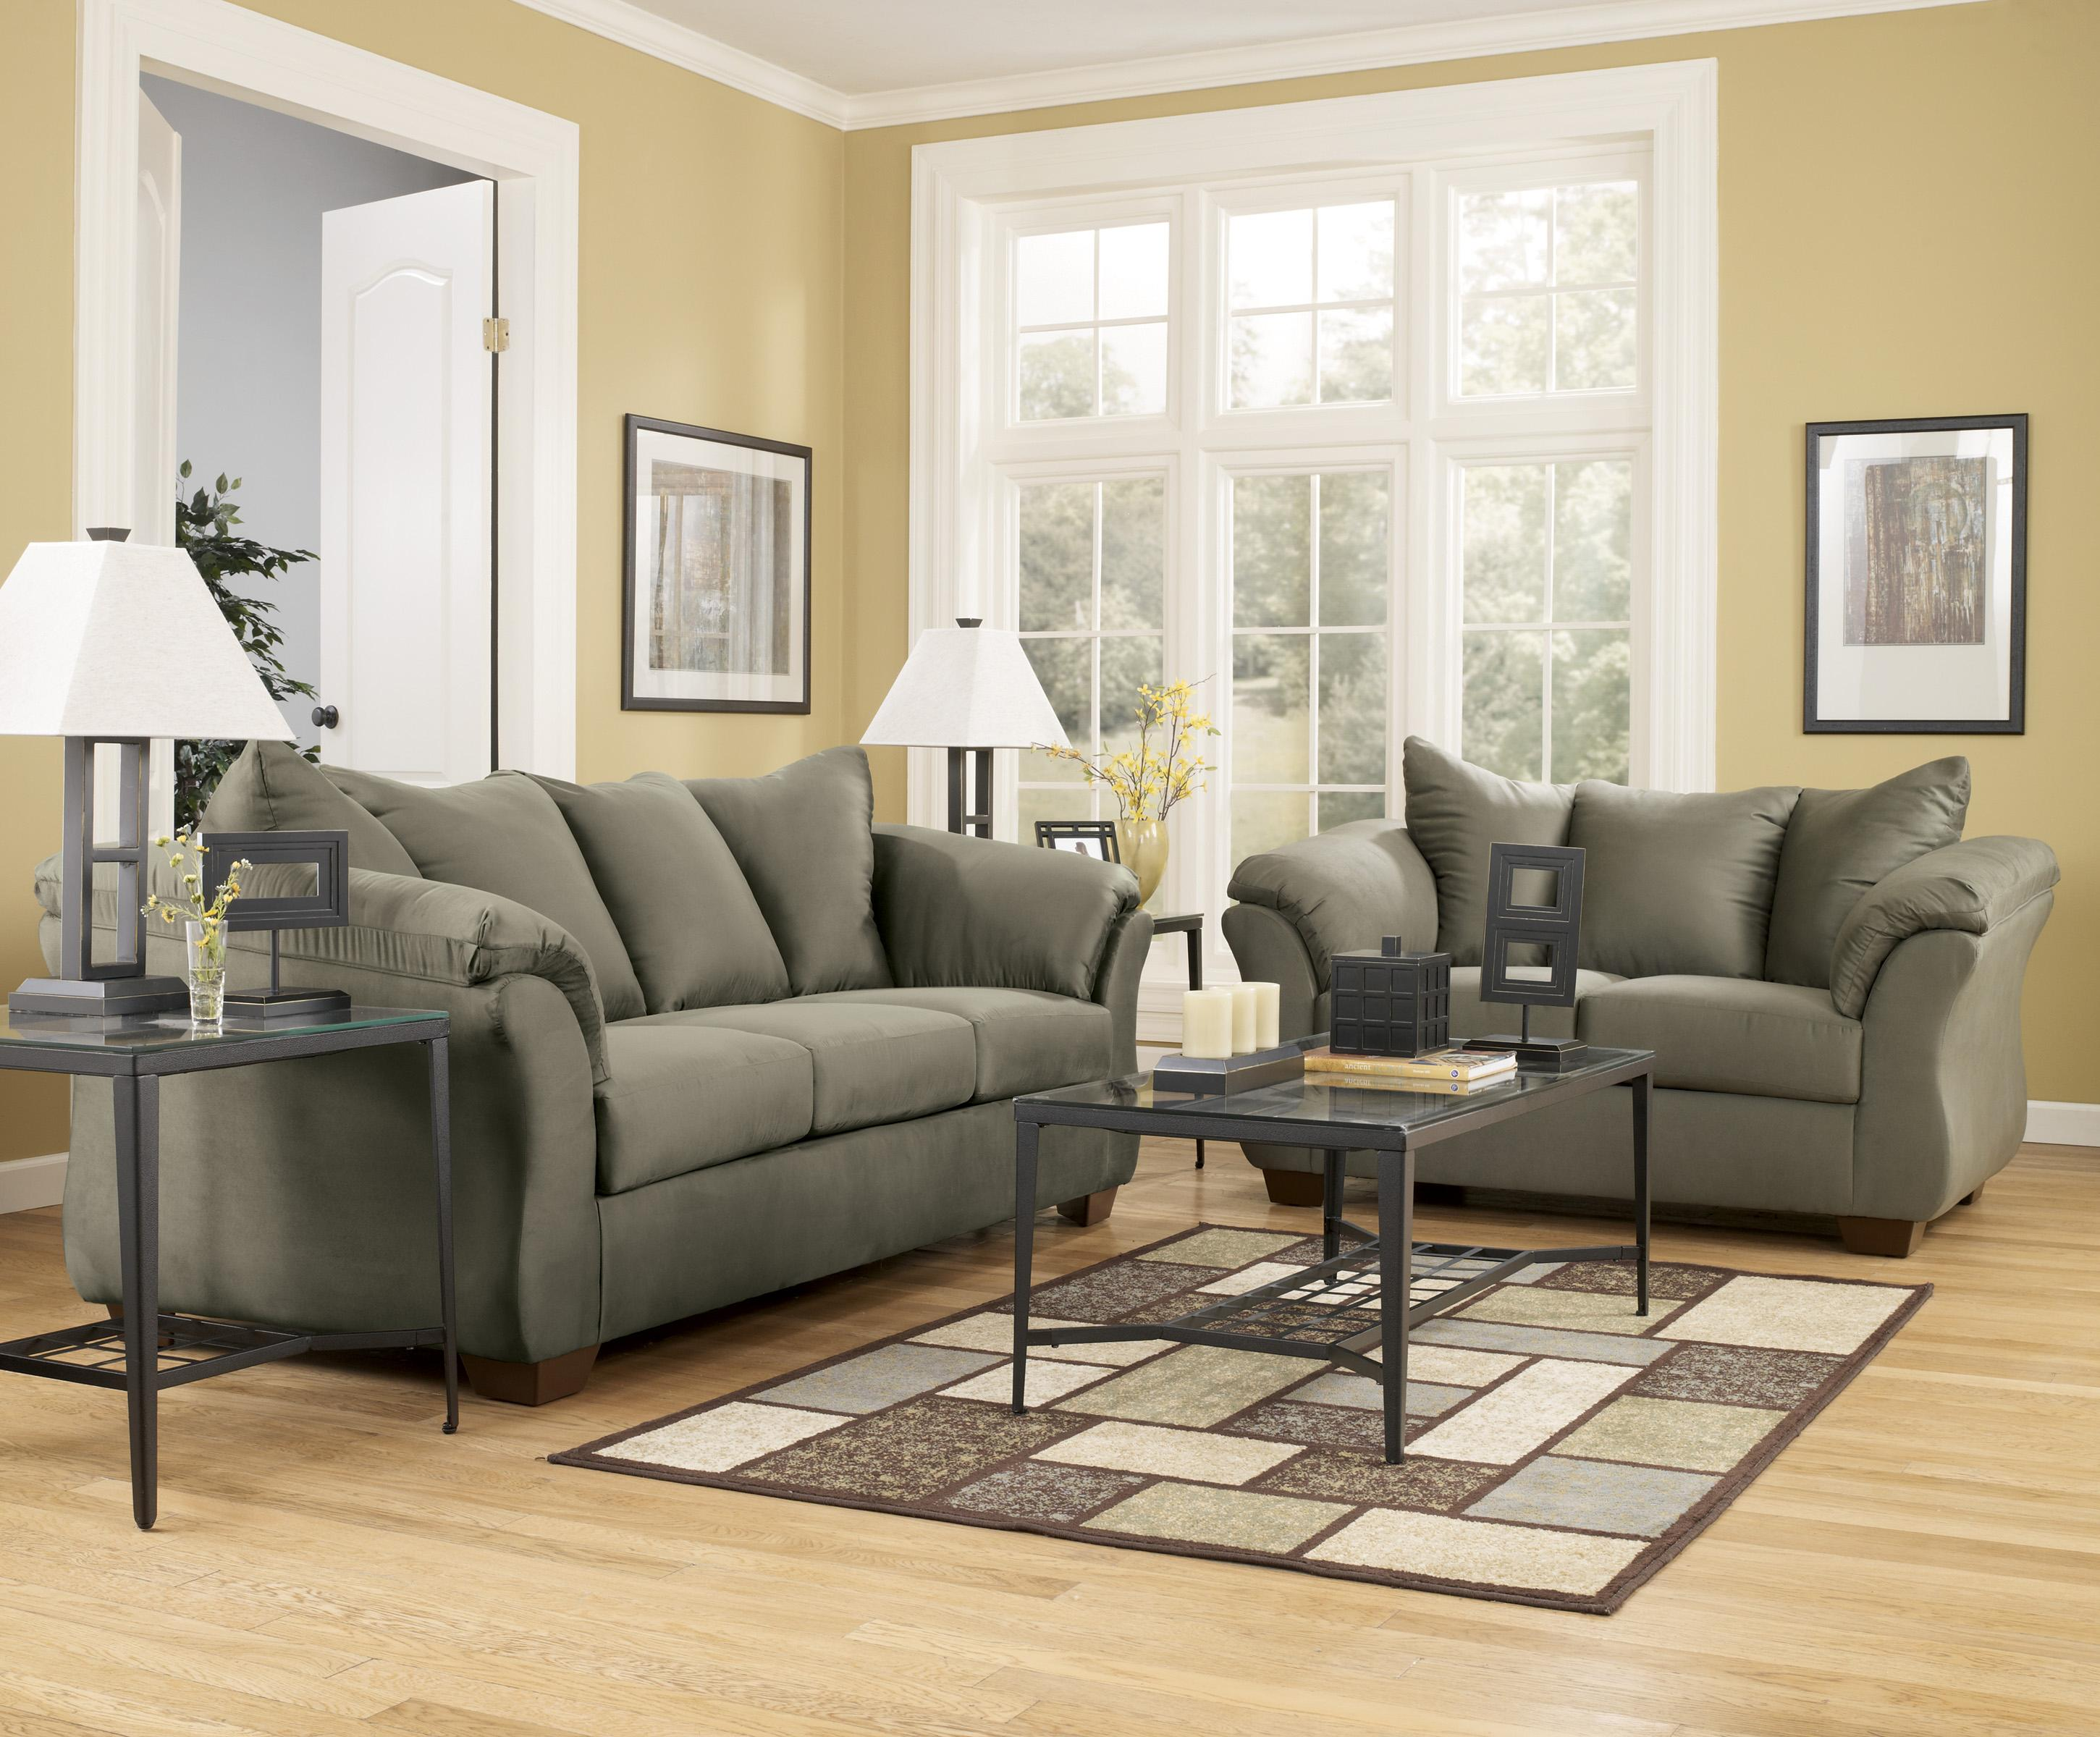 Signature Design By Ashley Darcy Sage Contemporary Sectional Sofa